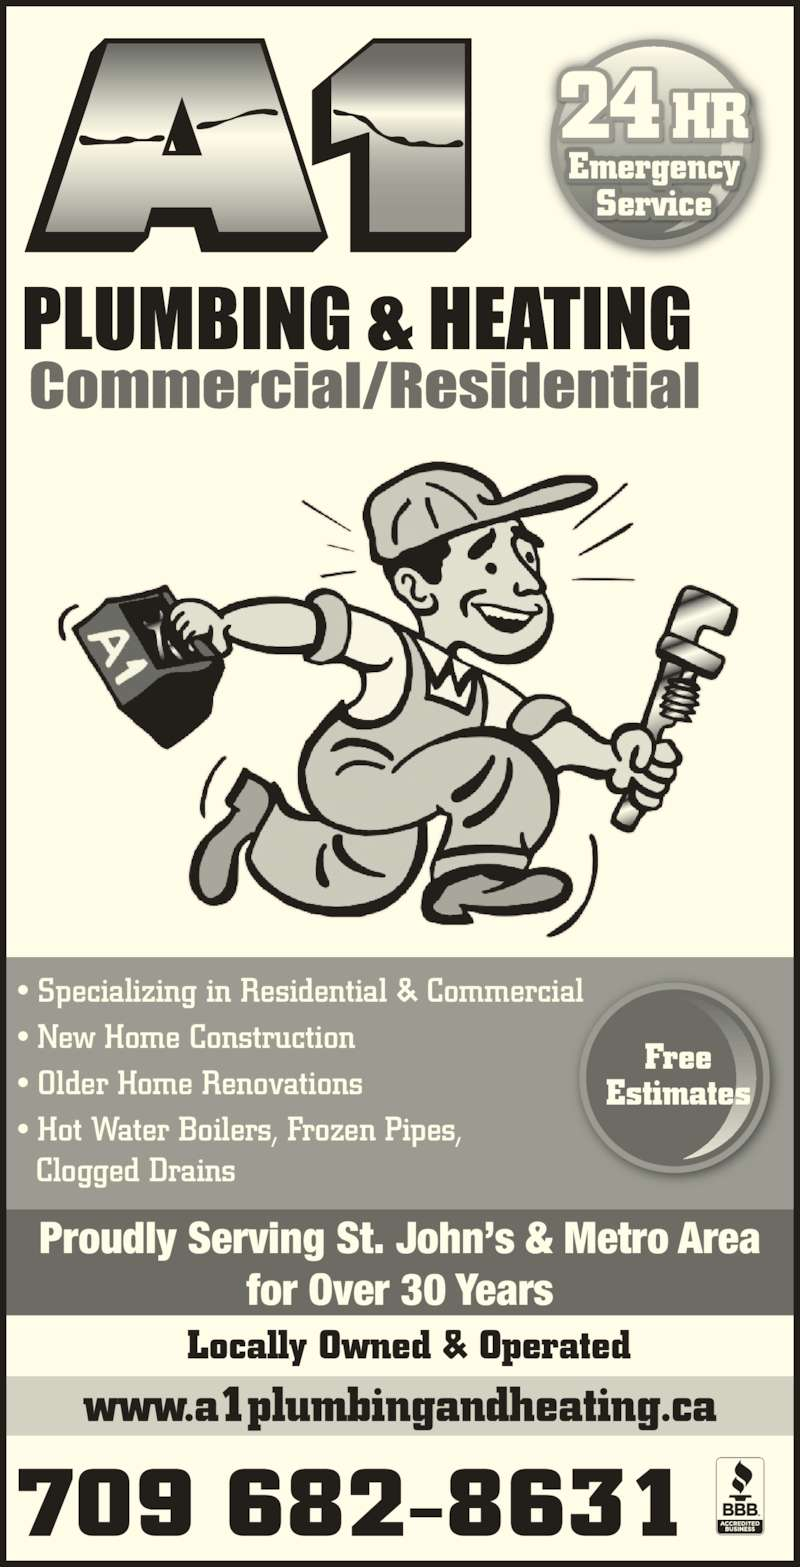 A1 Plumbing & Heating Ltd (709-682-8631) - Display Ad - Locally Owned & Operated ? Specializing in Residential & Commercial ? New Home Construction ? Older Home Renovations ? Hot Water Boilers, Frozen Pipes,   Clogged Drains 24 HR Emergency Service Free Estimates 709 682-8631 Proudly Serving St. John?s & Metro Area for Over 30 Years www.a1plumbingandheating.ca